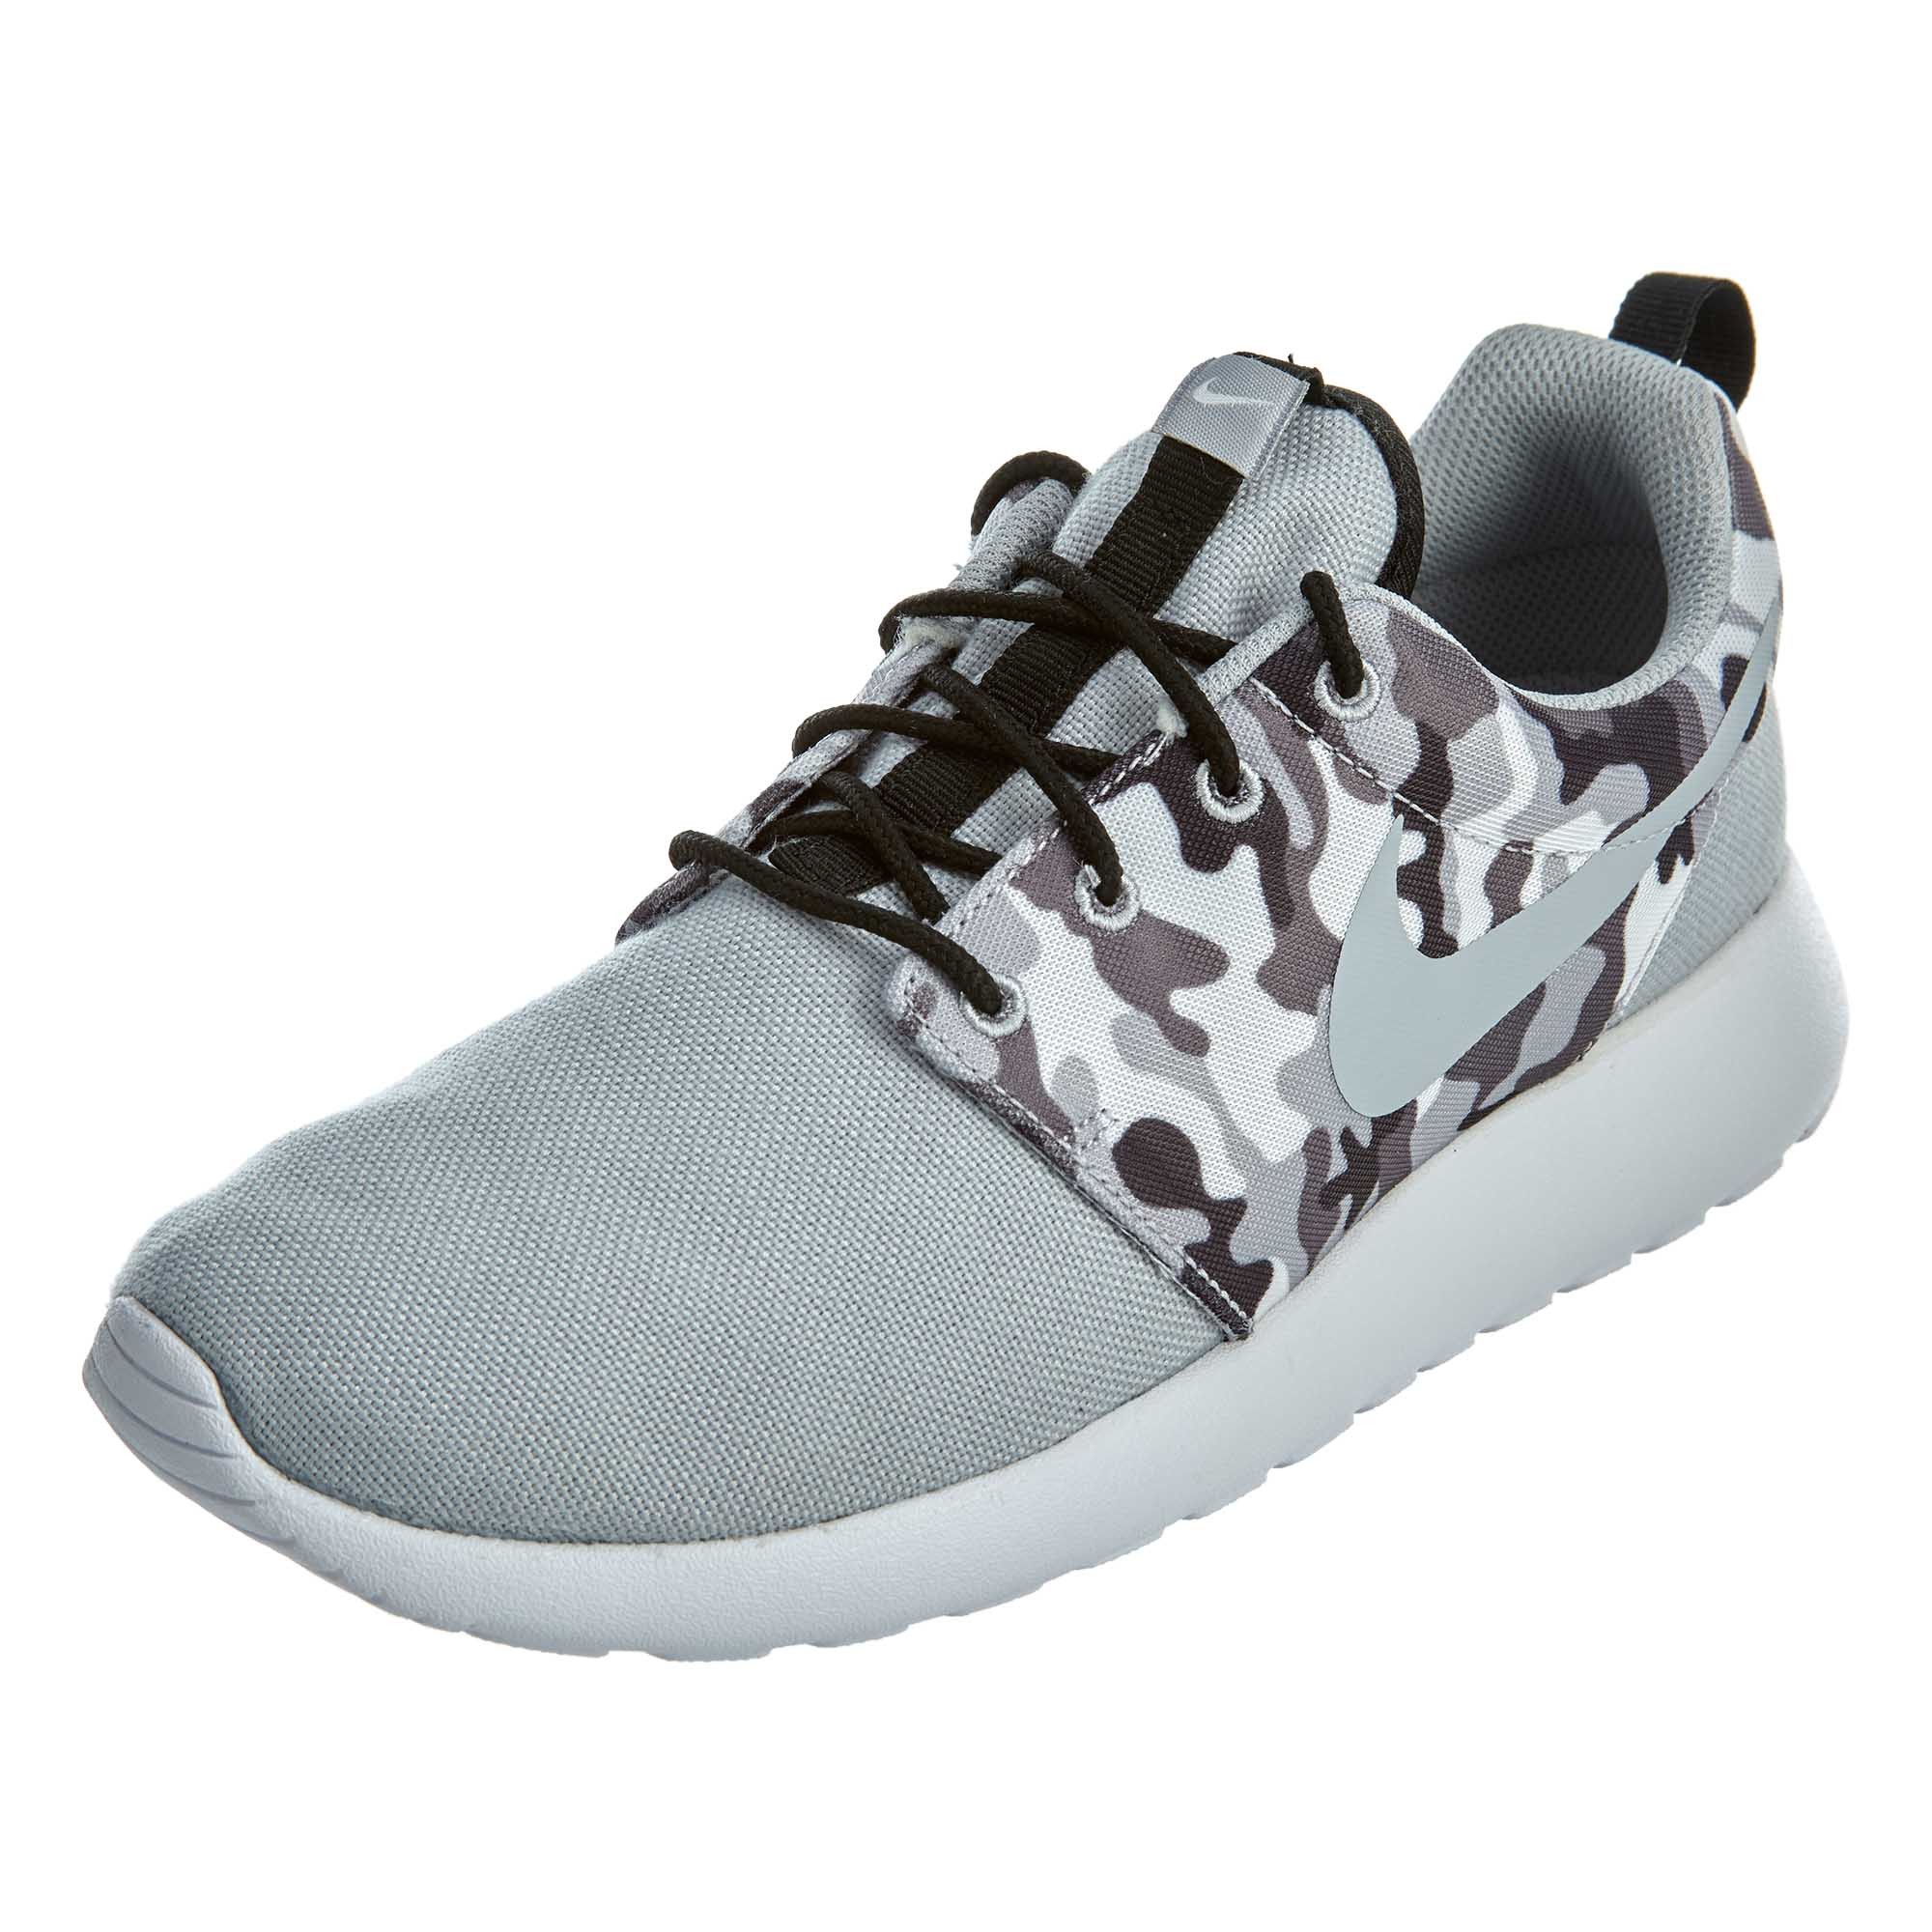 reputable site 1e674 0805c Details about Nike Mens Roshe One SE Shoes 844687-013